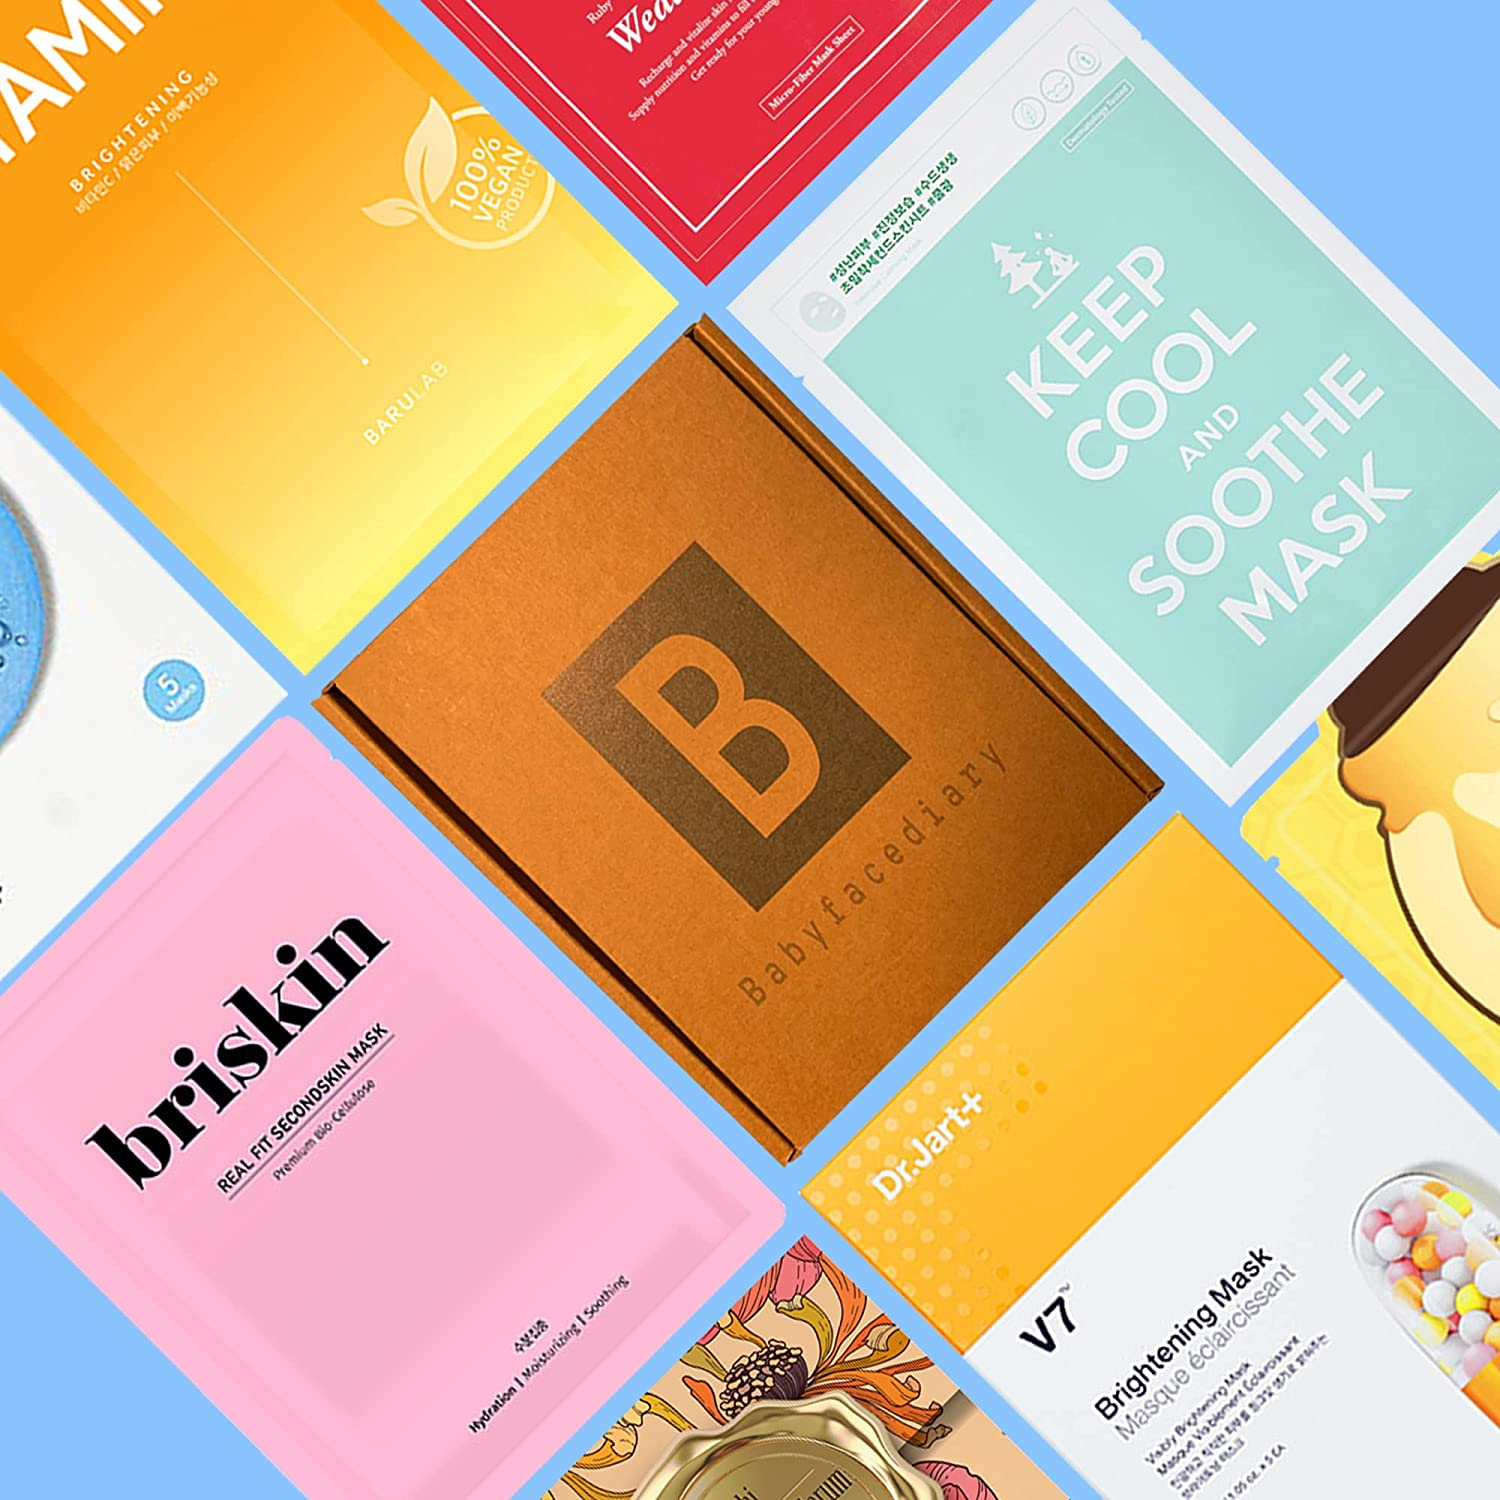 BabyFaceDiary - Authentic Korean Sheet Mask Monthly Subscription Box: Mystery Wow